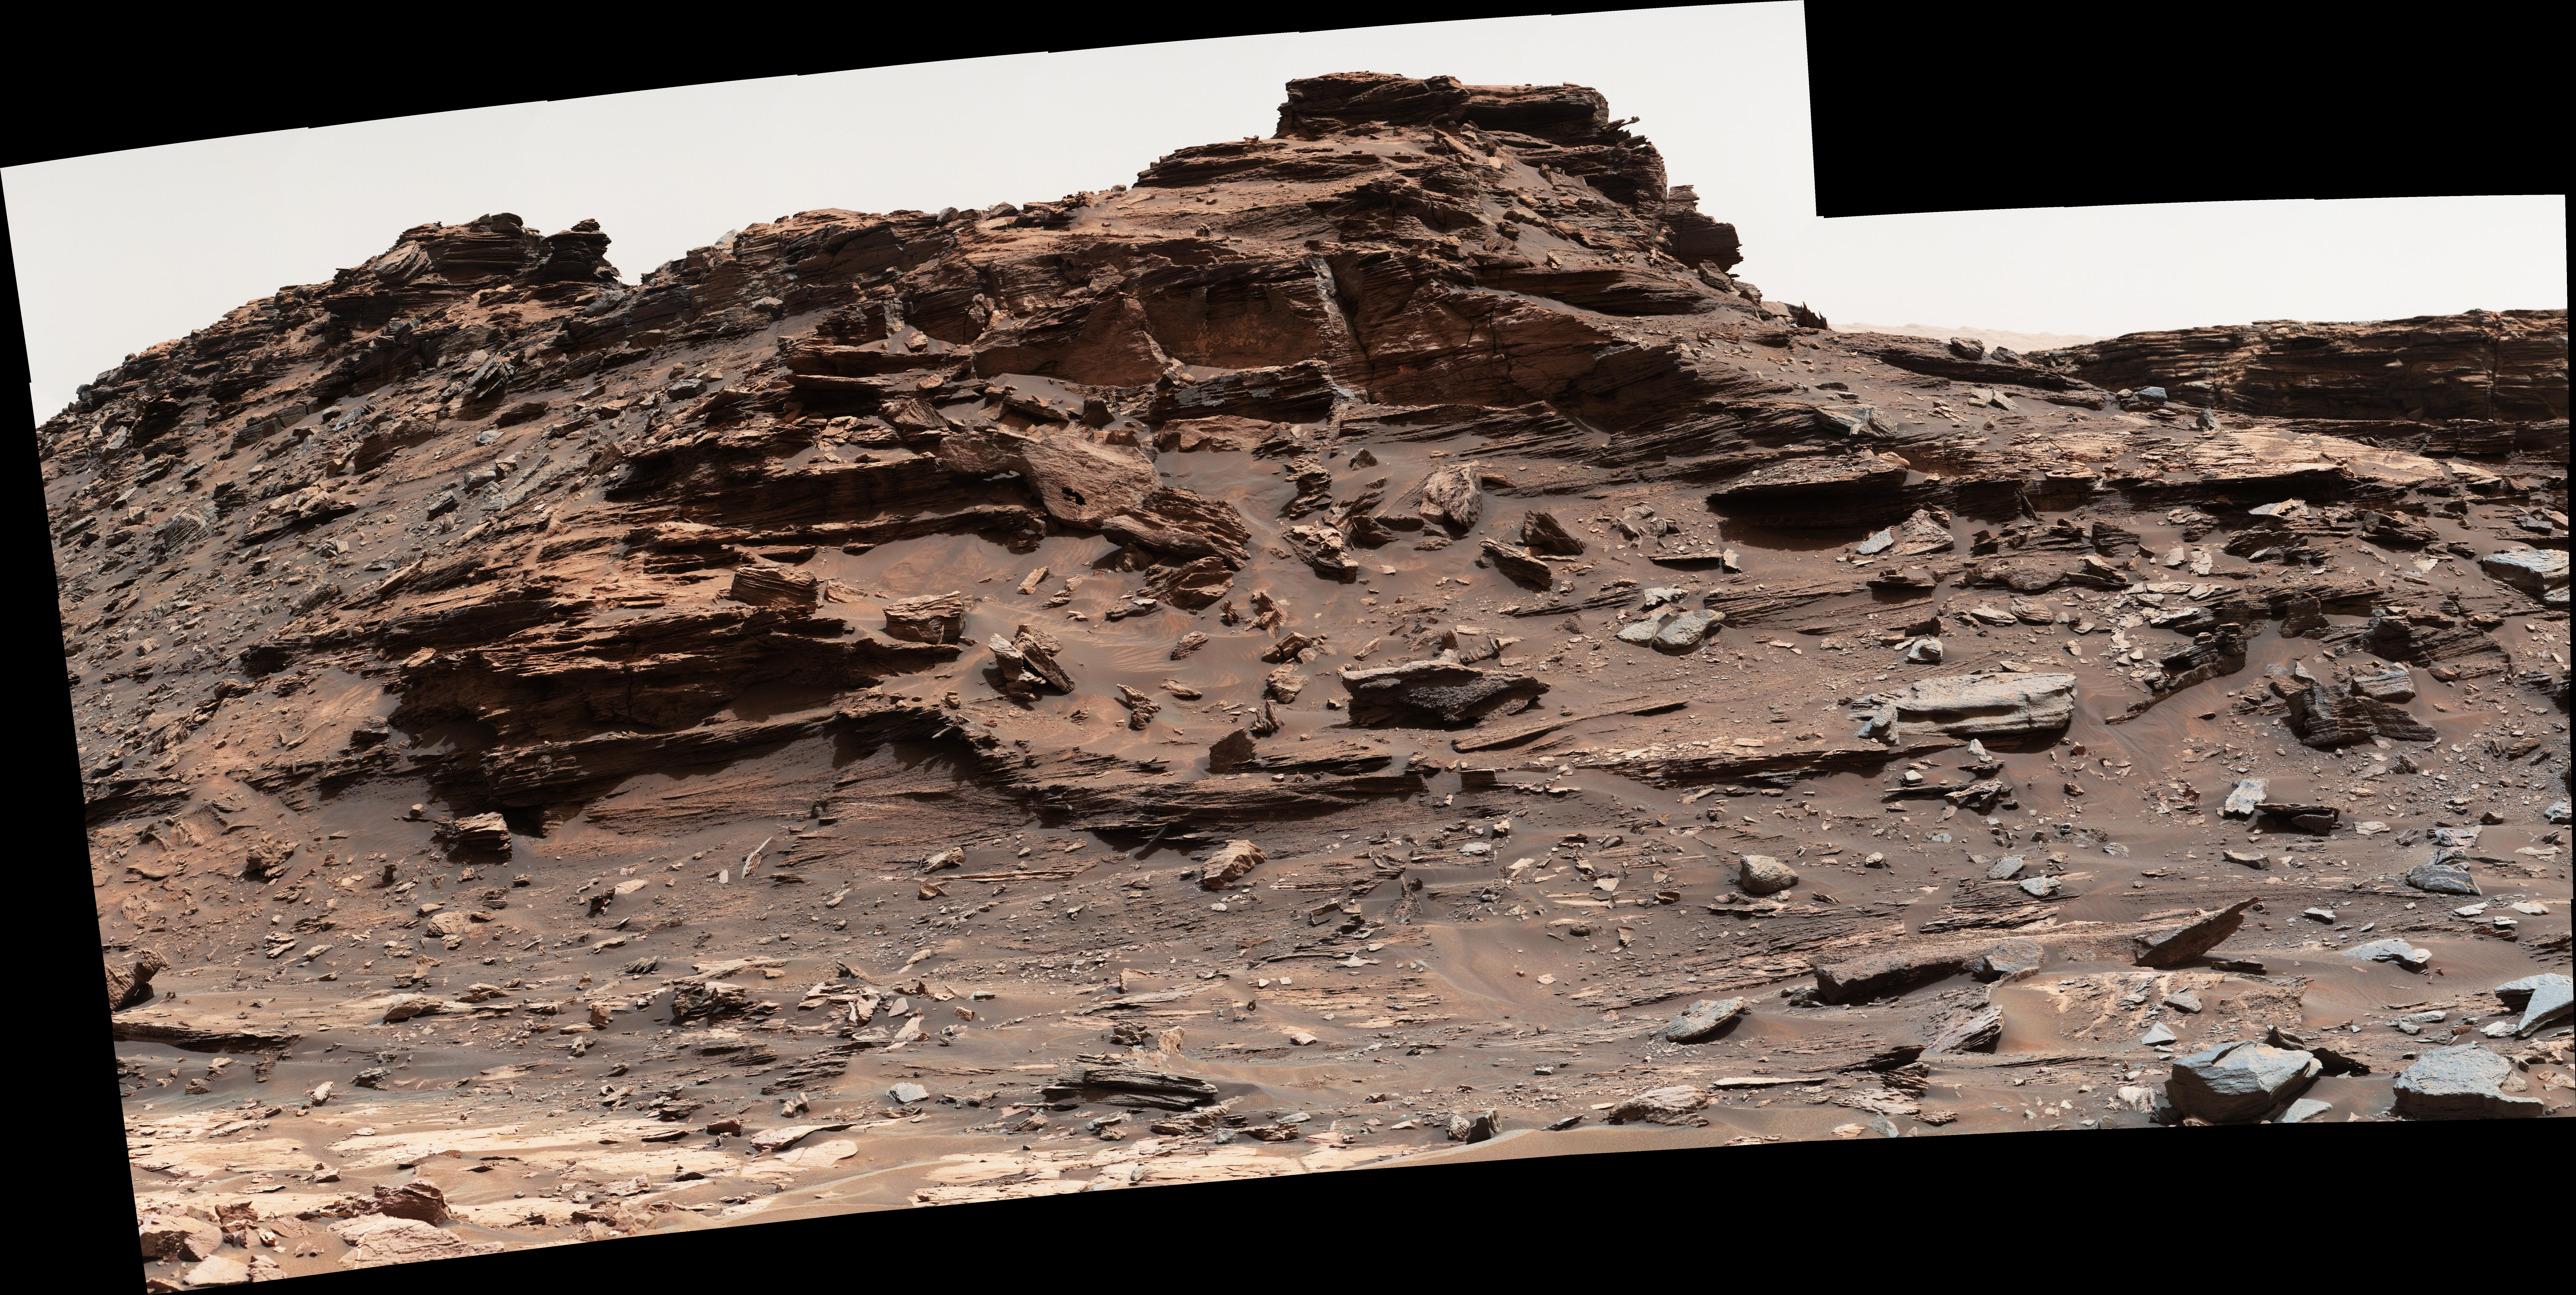 nasa finds message from god on mars - HD1600×804